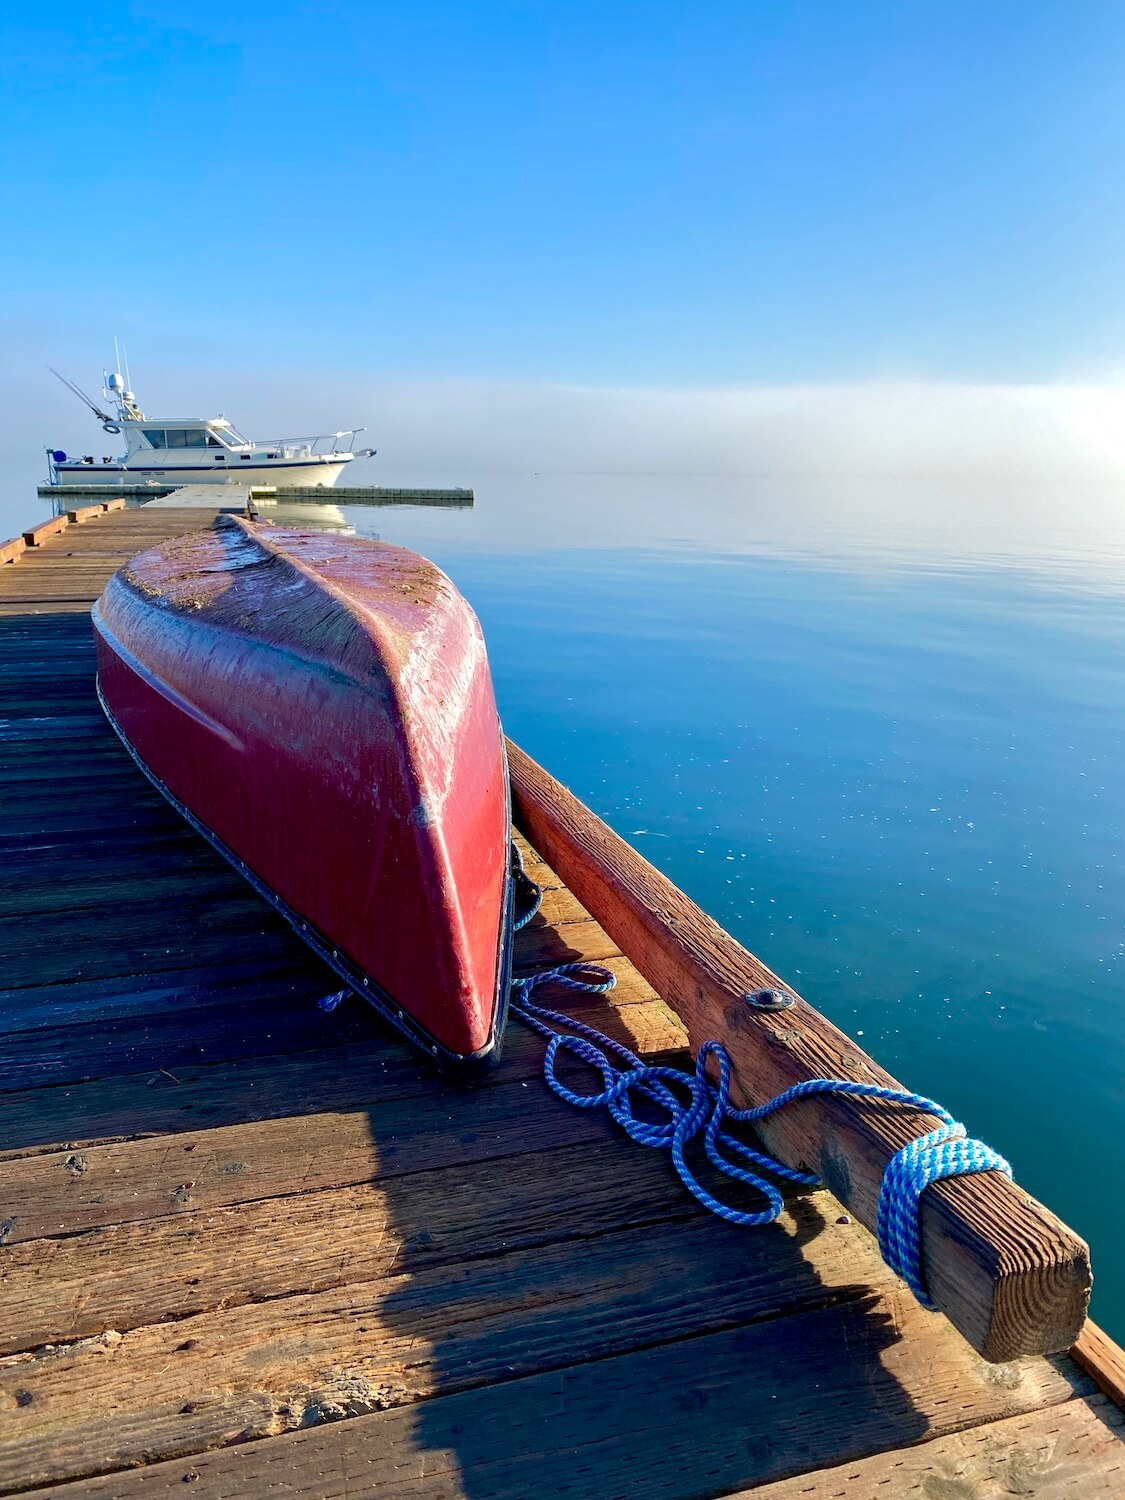 Boating is a popular thing to do on Whidbey Island, and this shot shows an upside down red canoe on a dock with a cruiser fishing boat tied to the dock at the end. The water is blue and fades through some clouds into the horizon.